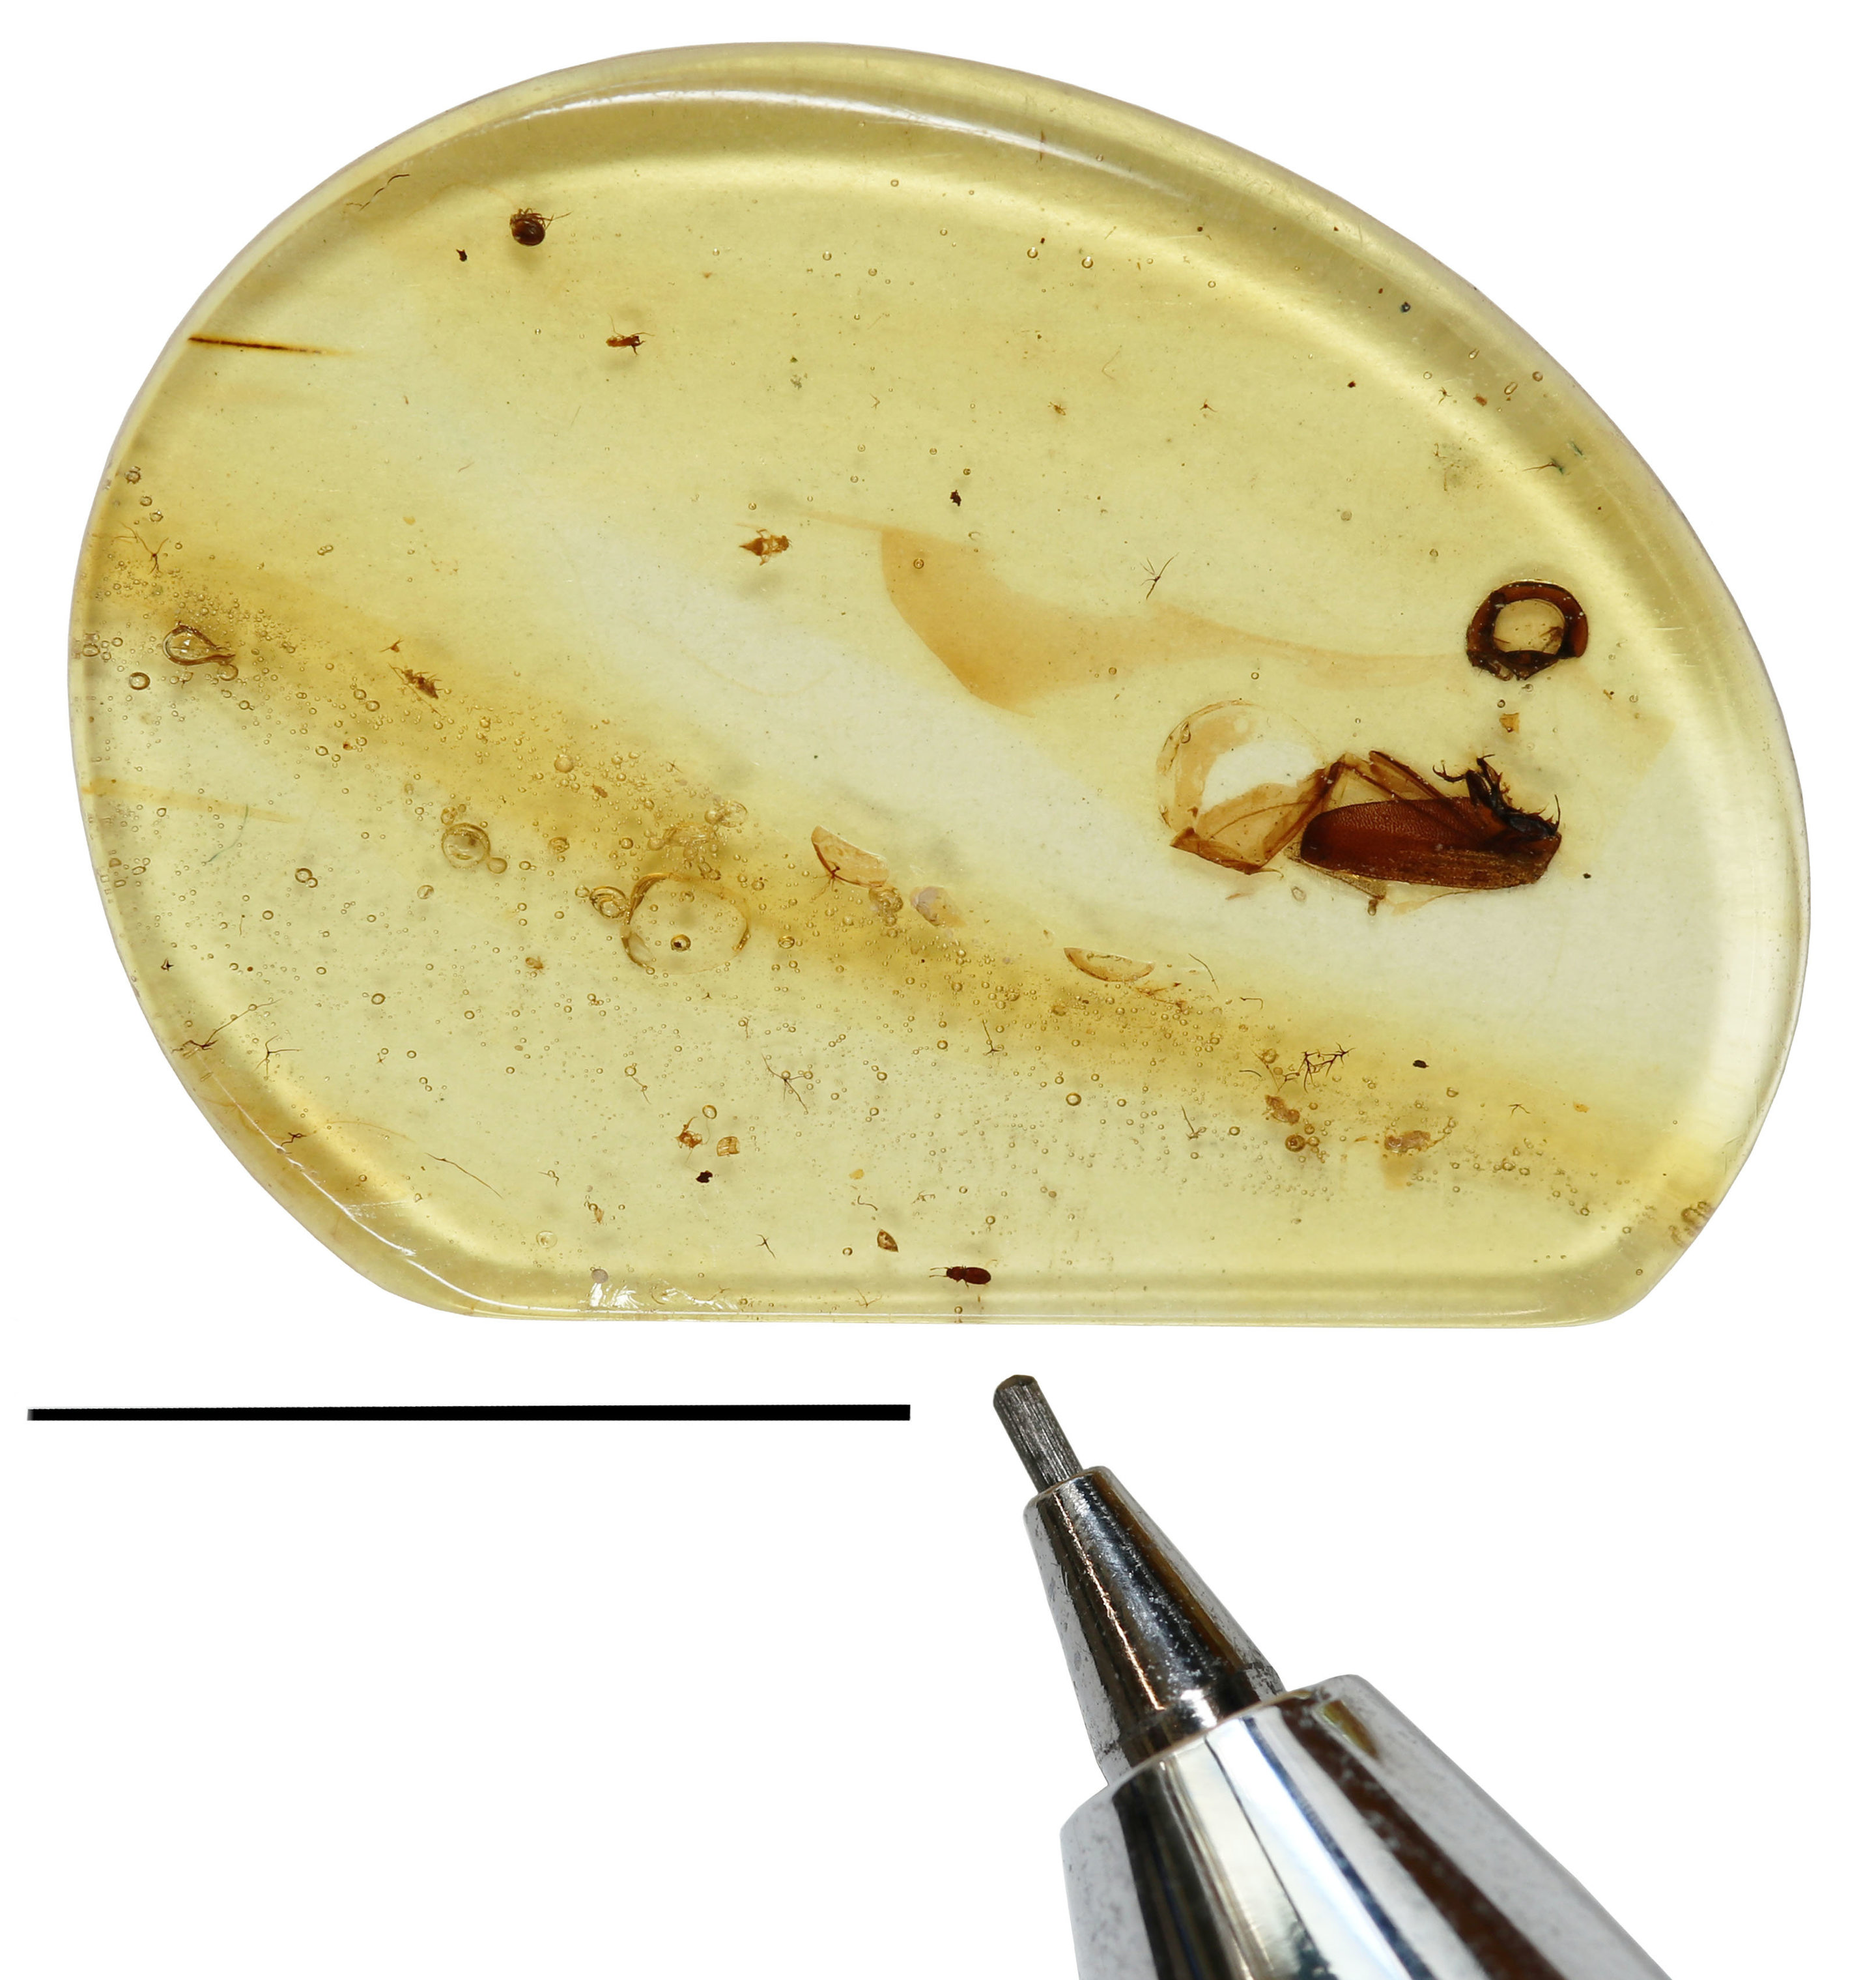 The Amber Sample With New Beetle Trapped Inside Is Tiny Speck Indicated By Tip Of A Mechanical Pencil For Scale